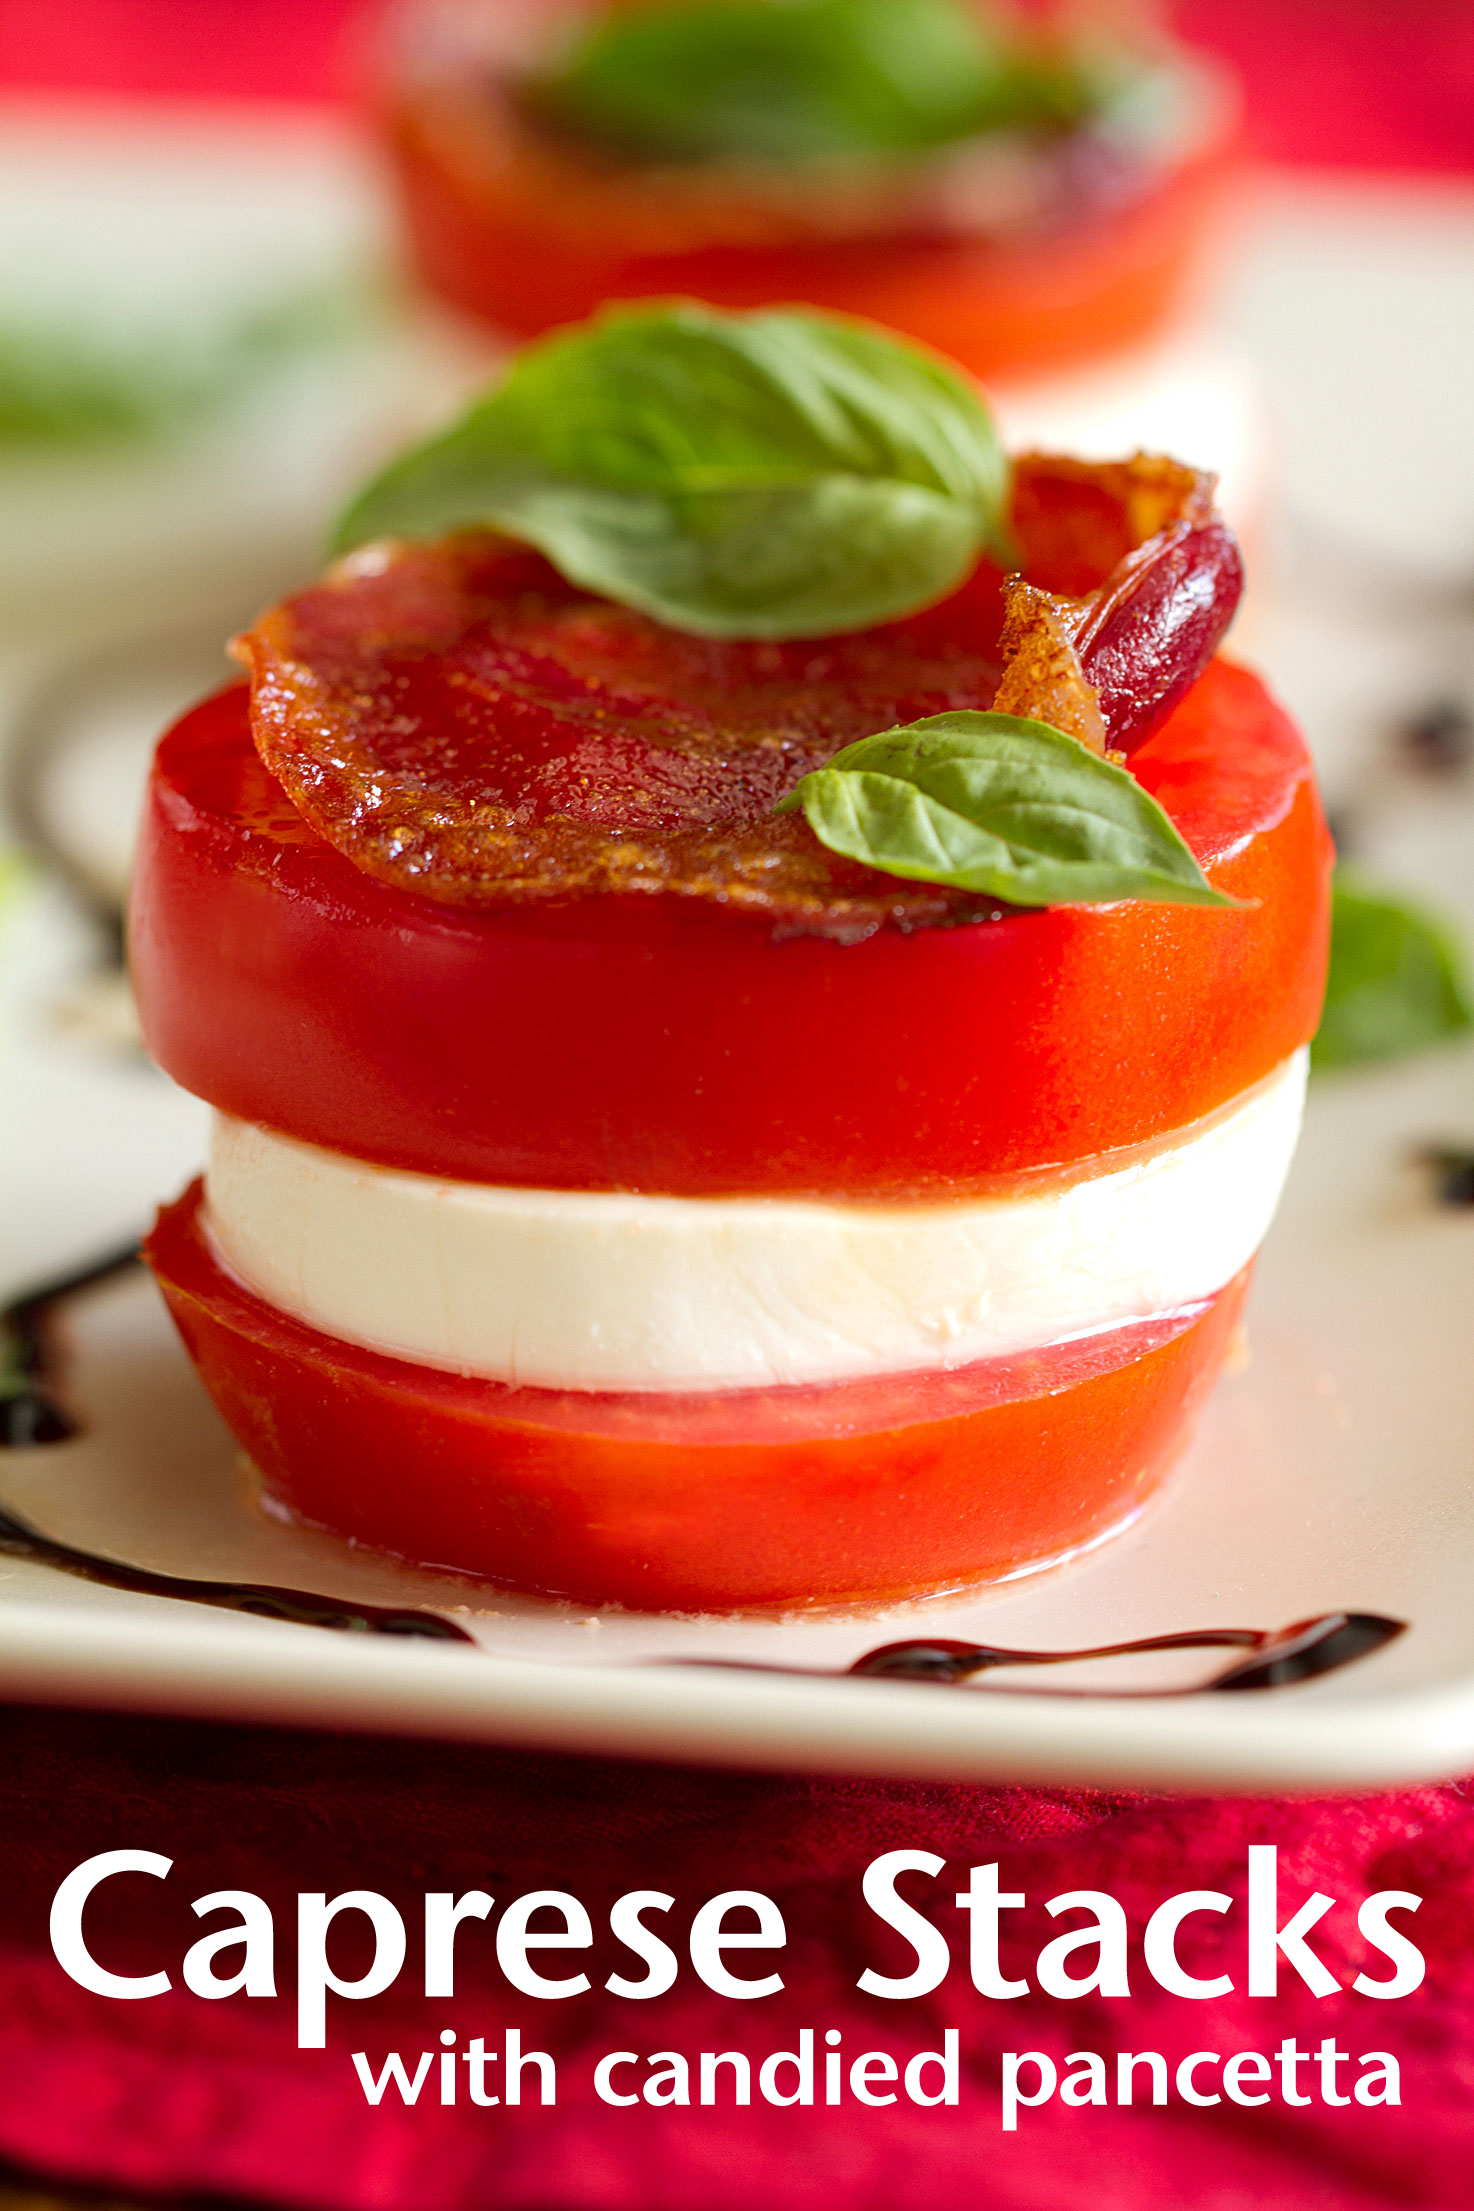 Caprese Stacks with Candied Pancetta